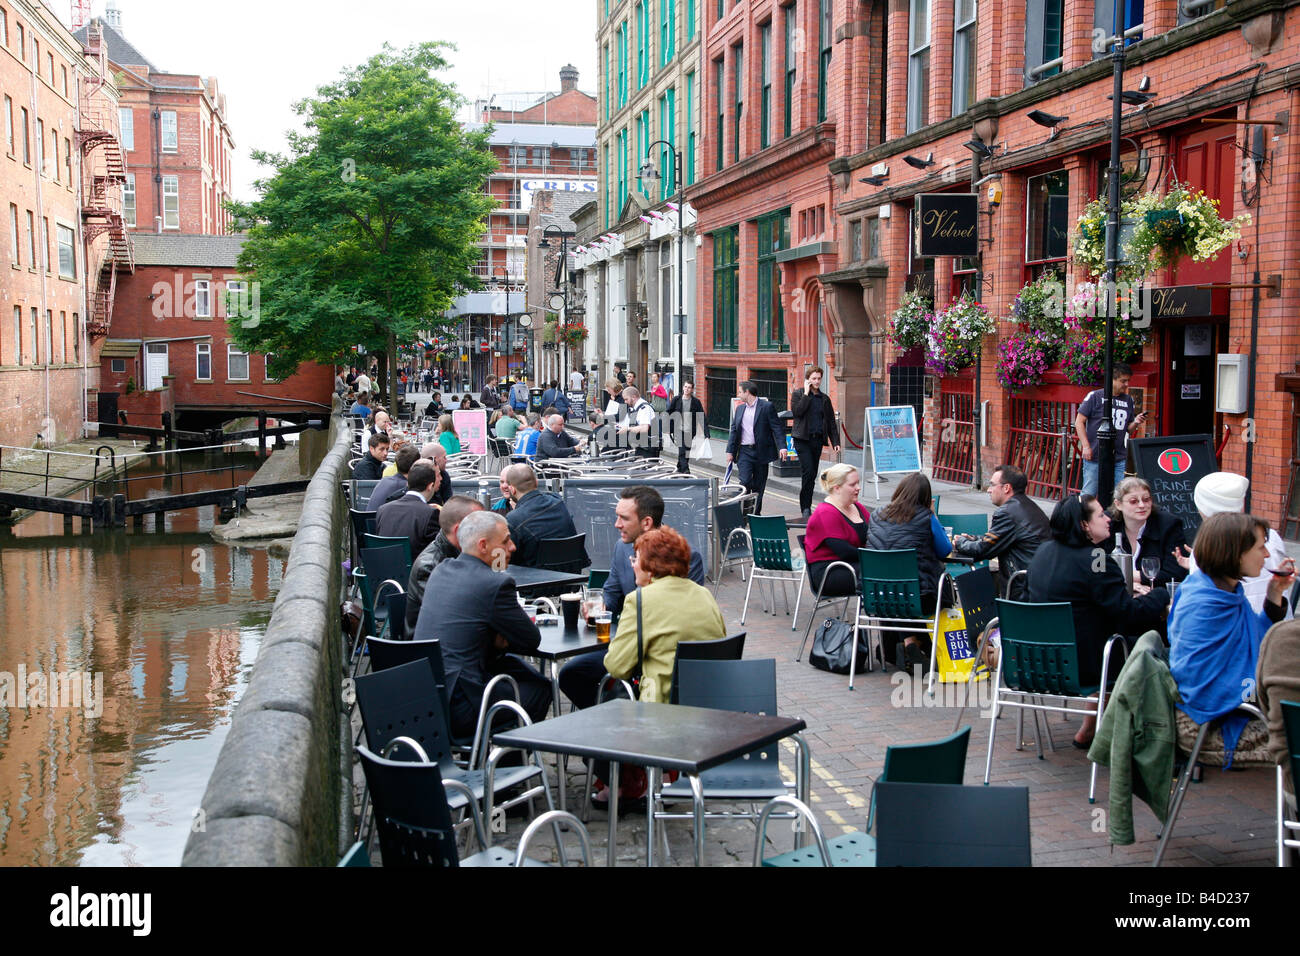 July 2008 - People sitting at outdoors cafes on Canal street known also as the Gay village Manchester England UK - Stock Image